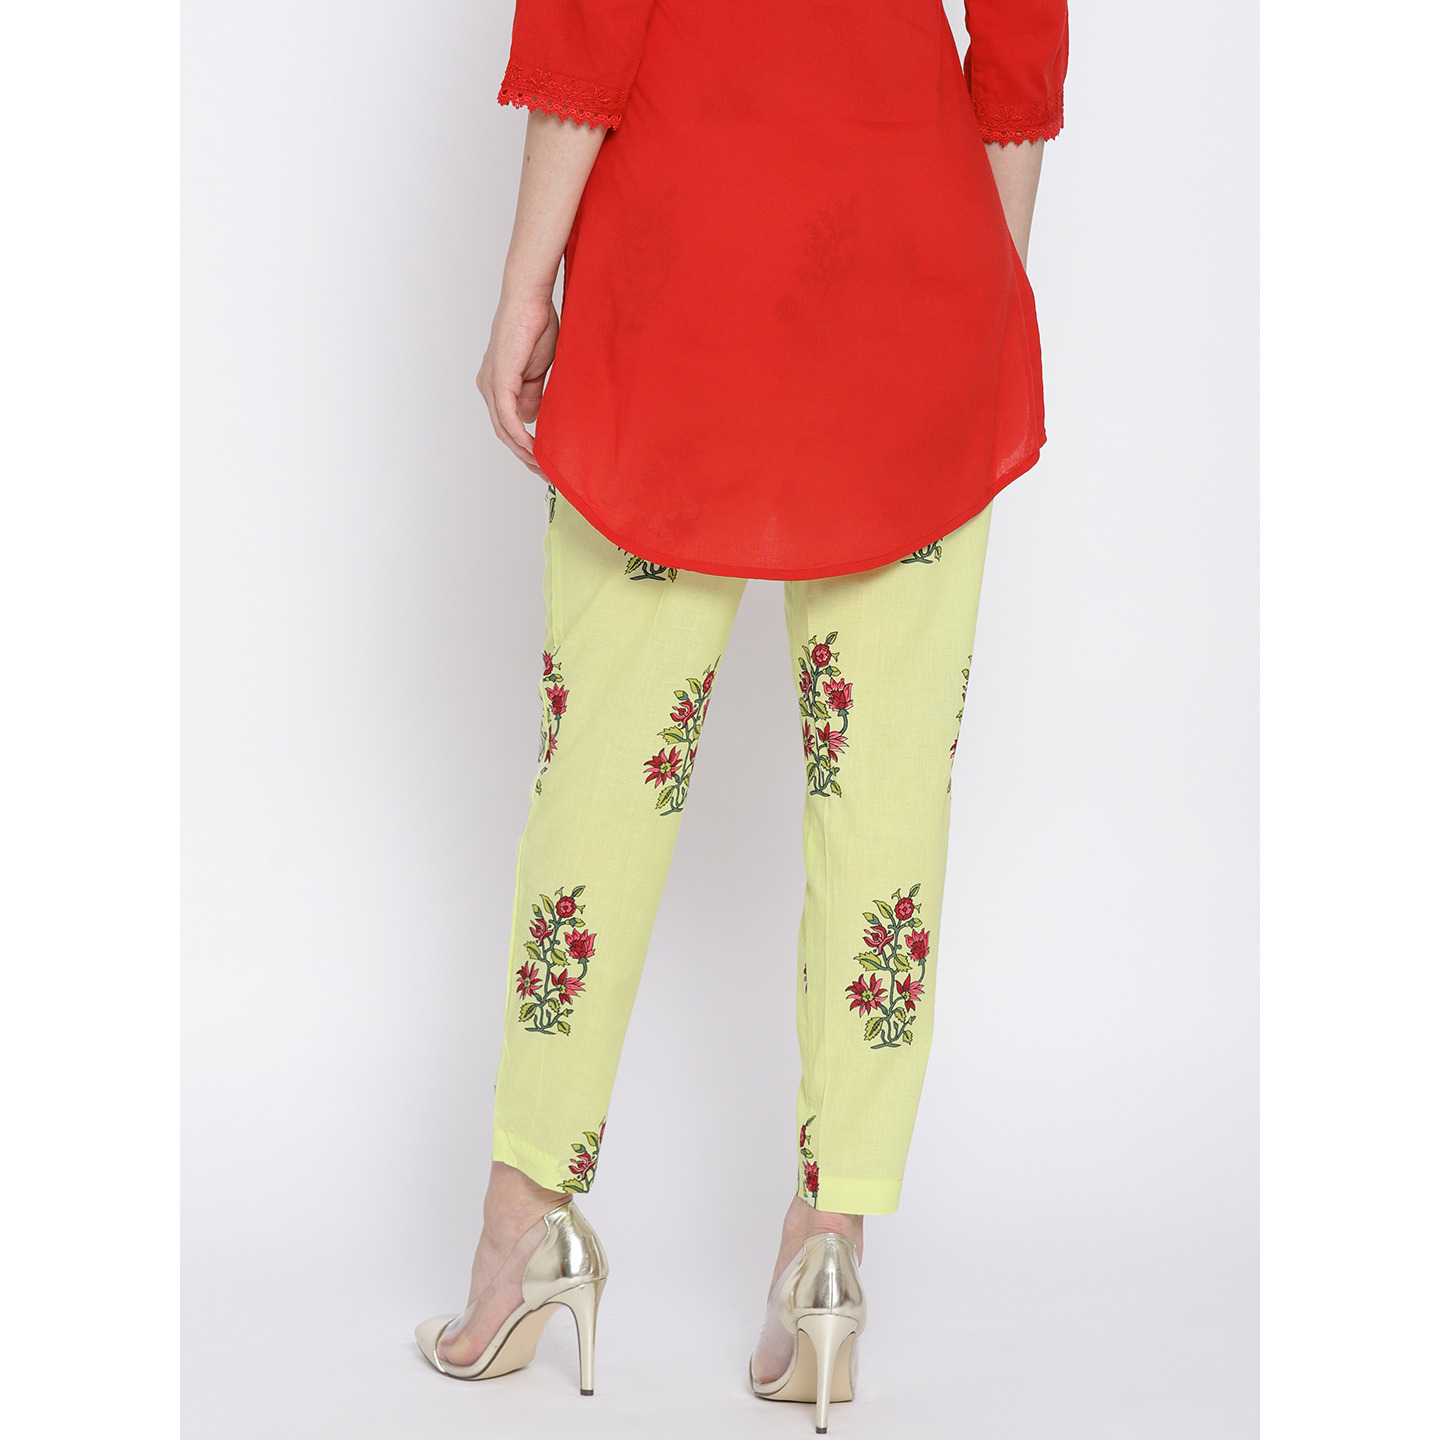 Ayaany Yellow Floral Print Cotton Pant (Size:S)